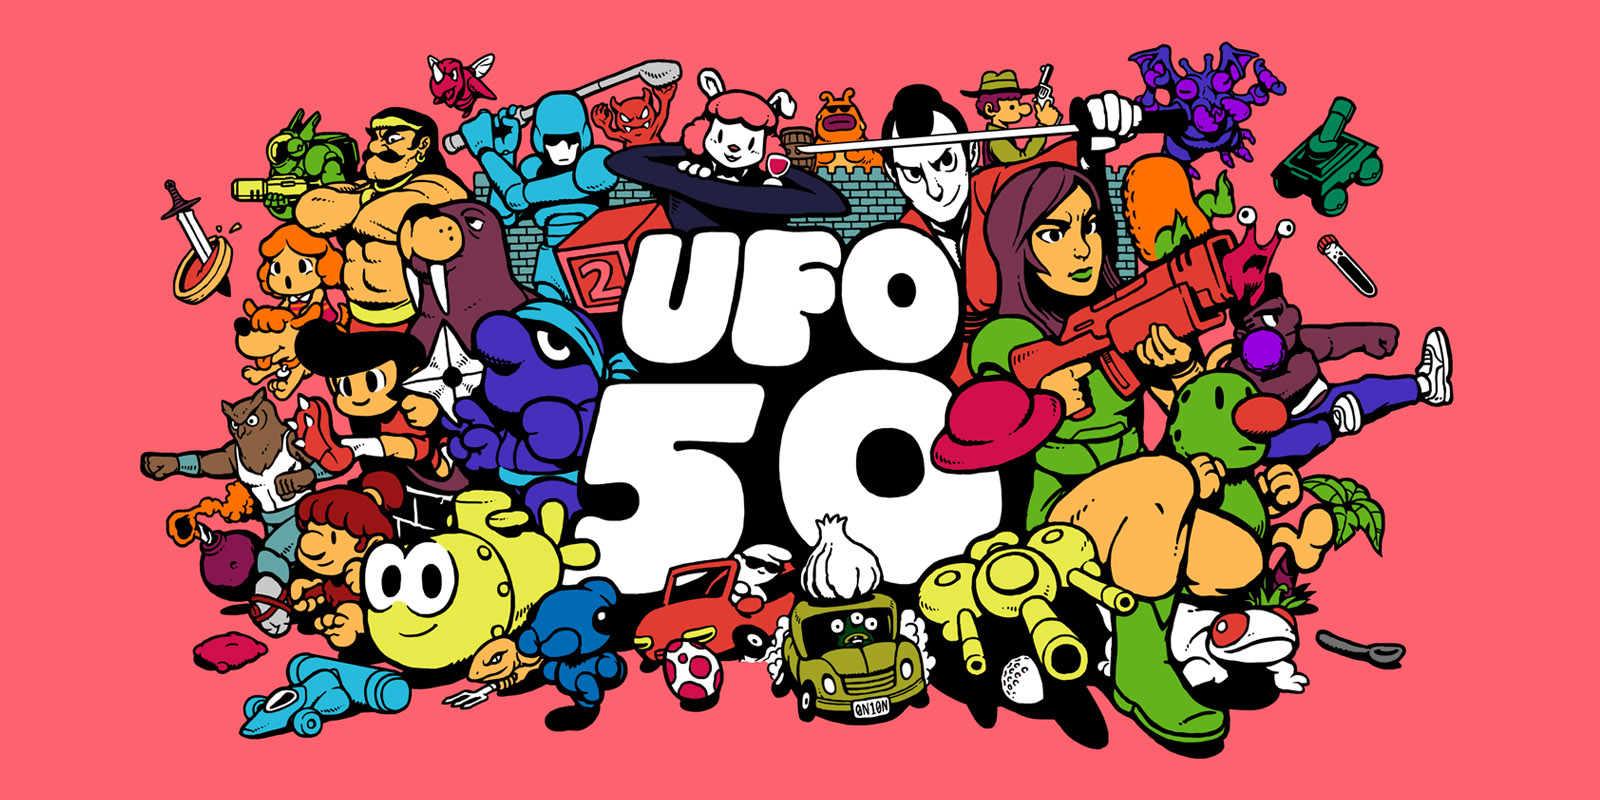 spelunky creator finally returns with a new game er 50 of them